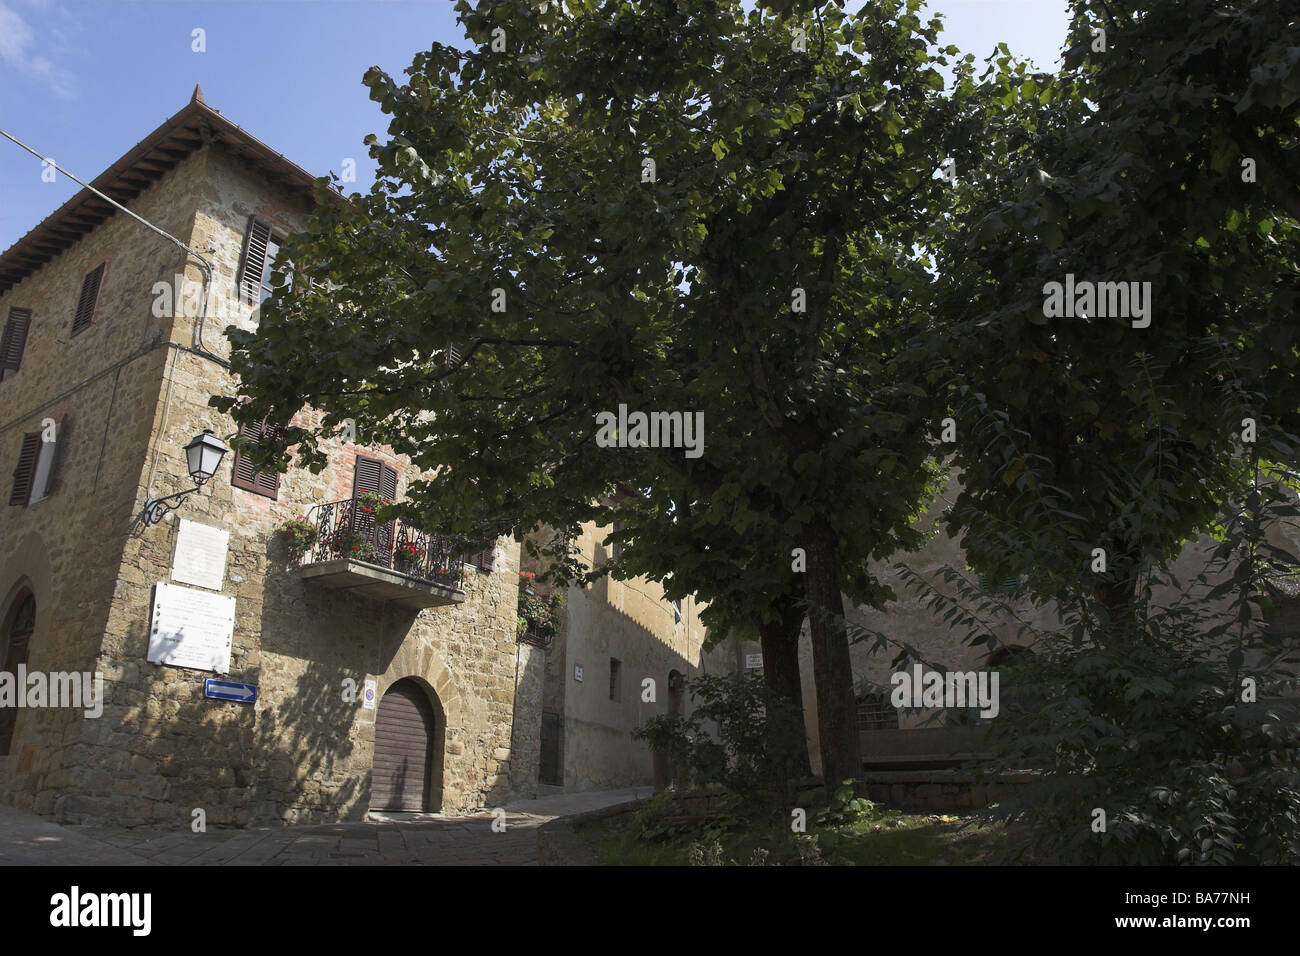 Italy Tuscany Monticchiello house-facade place trees summers city idyllically residence house buildings facade outside - Stock Image